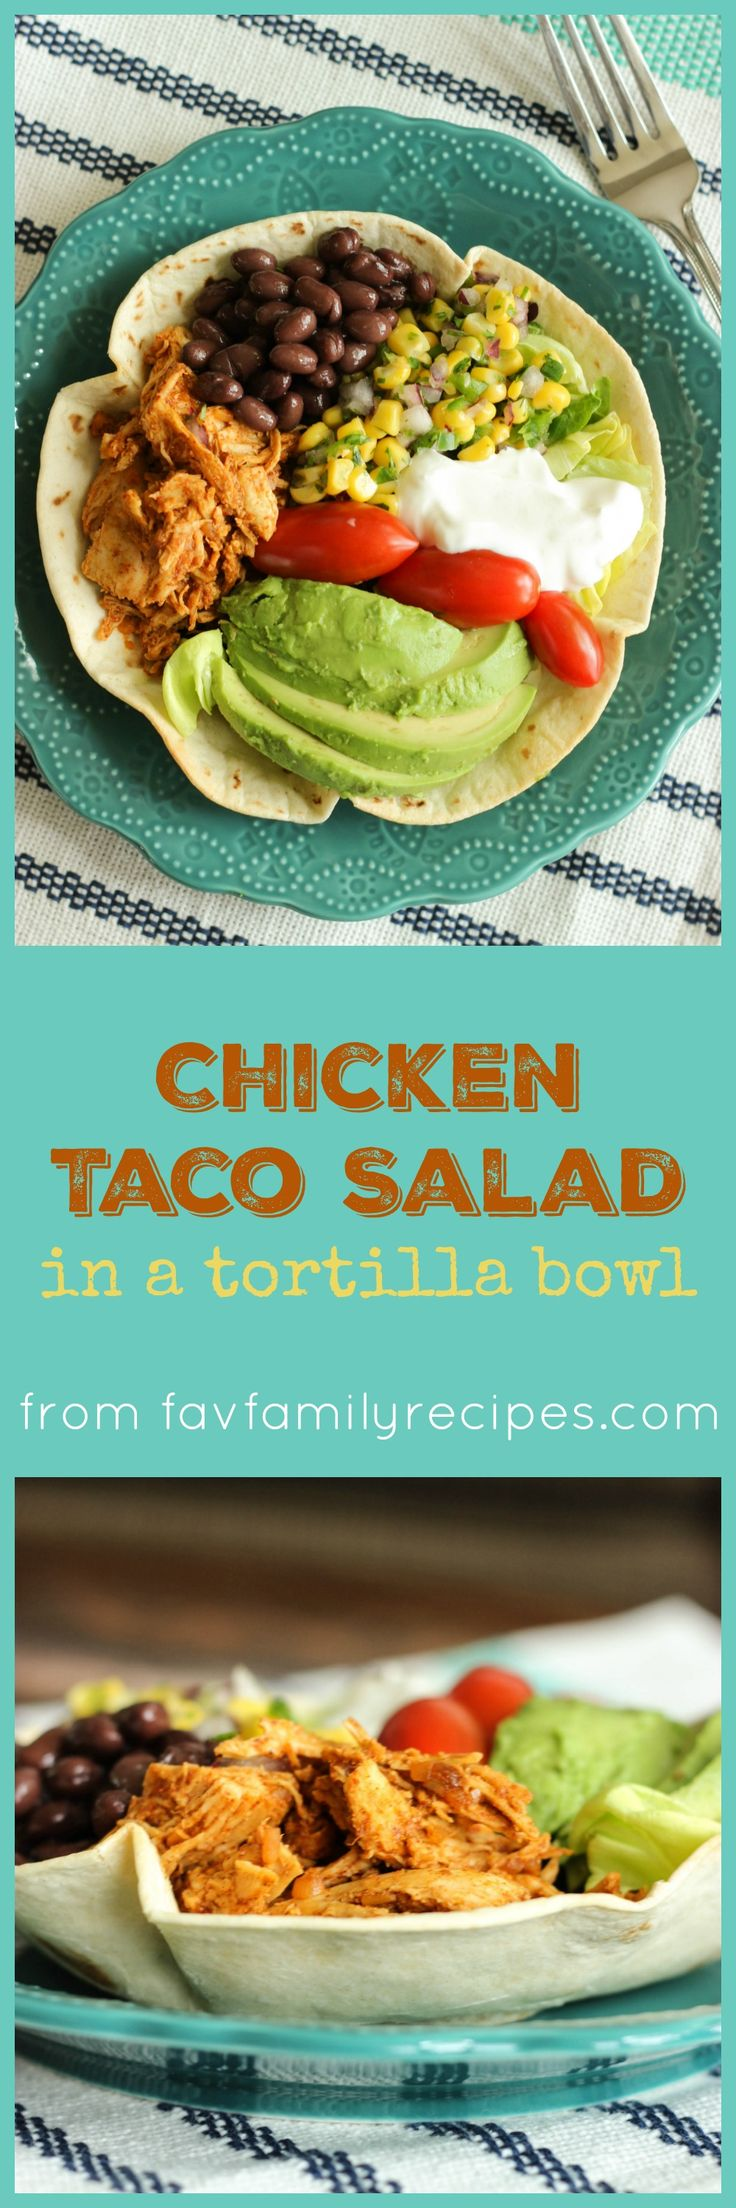 This Chicken Taco Salad in a Tortilla Bowl is easily the best taco salad I've ever had. The tortilla bowls are super easy to make and kids love them!